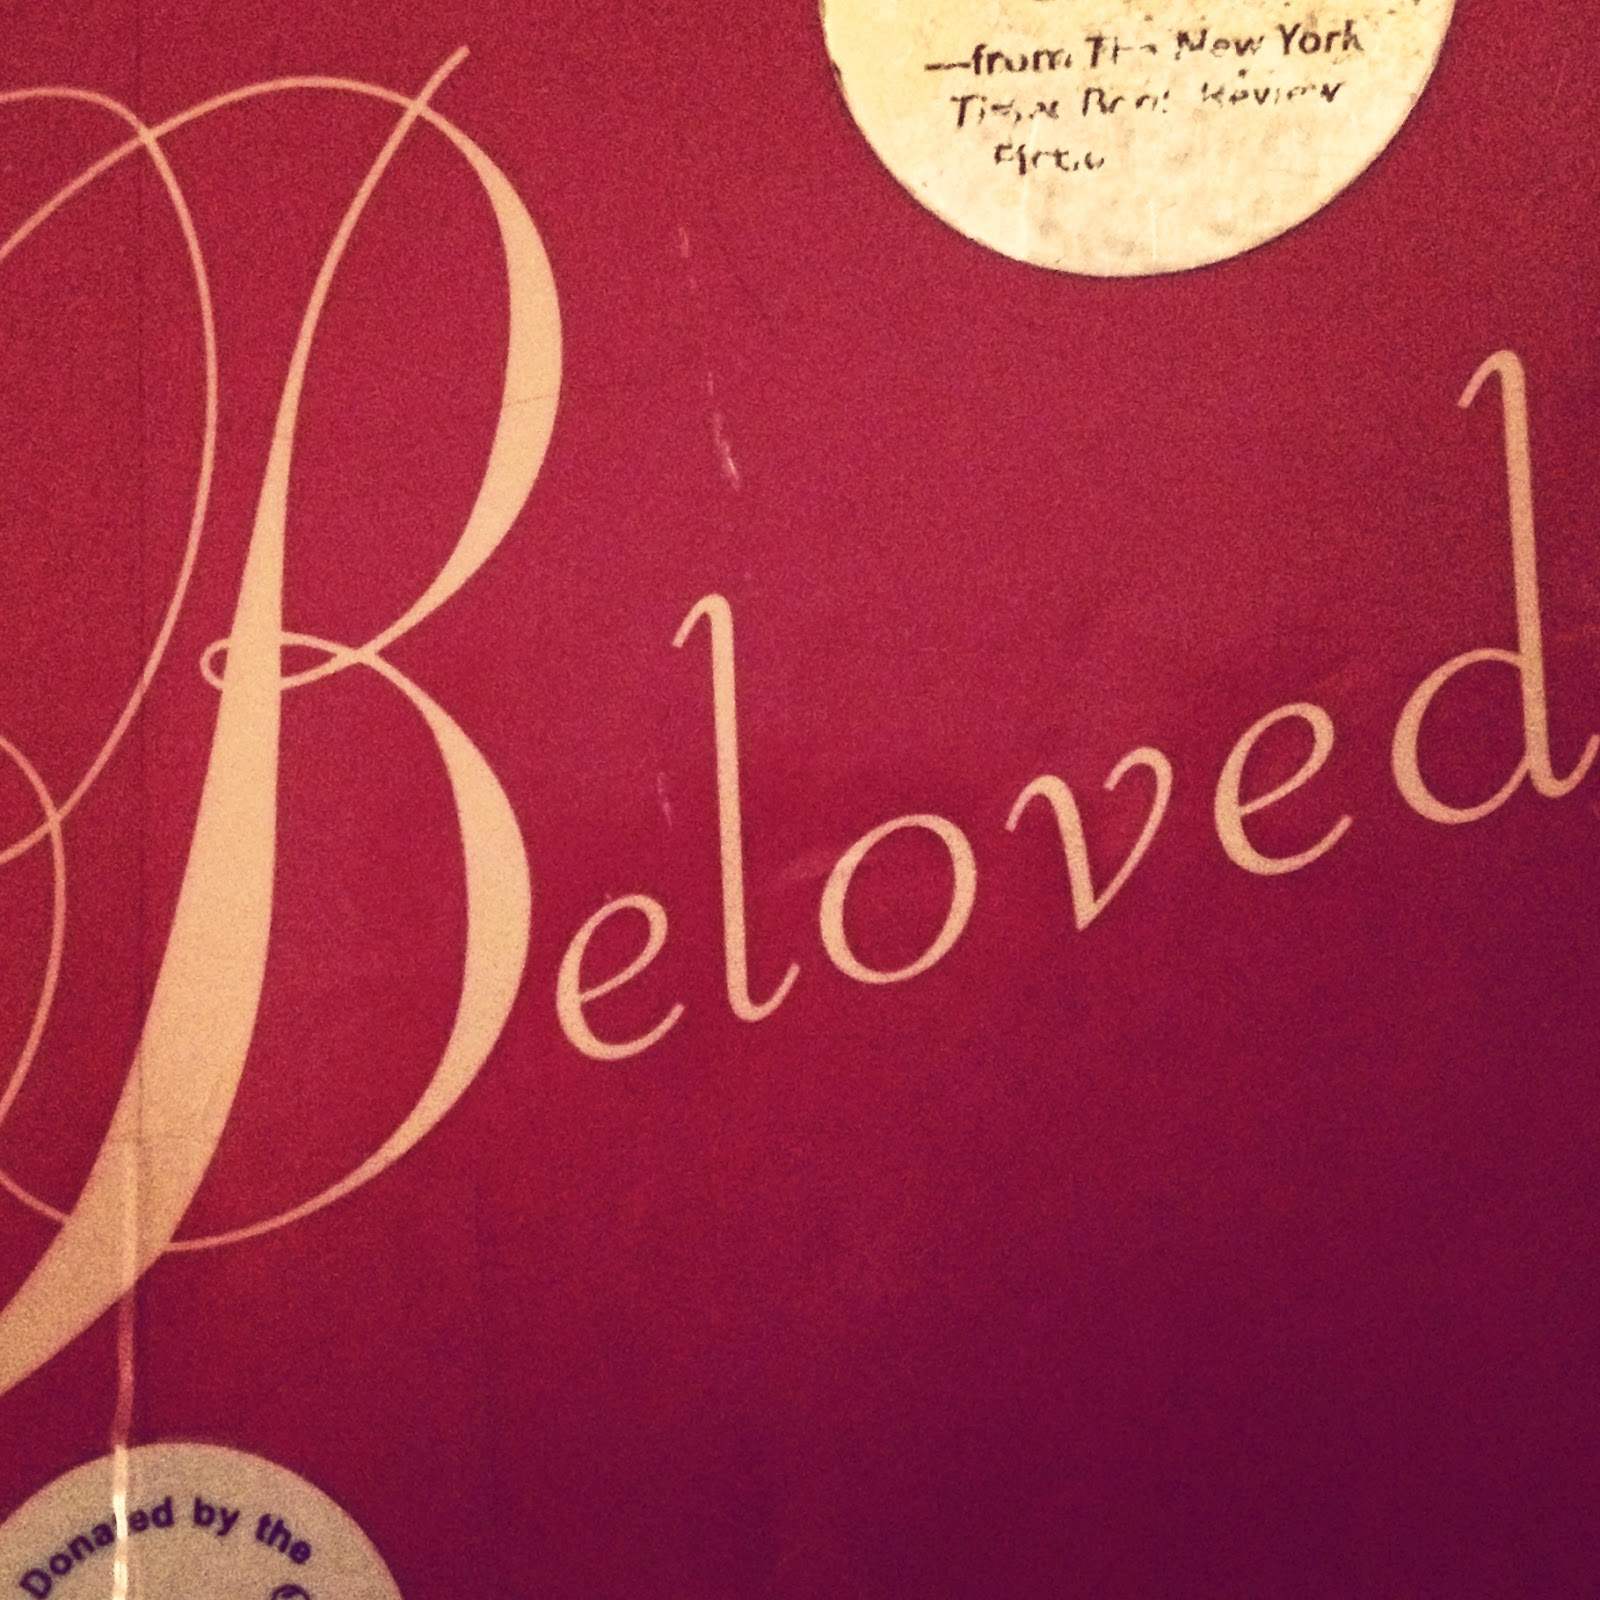 Beloved - Book Reviews 2014 | Crappy Candle